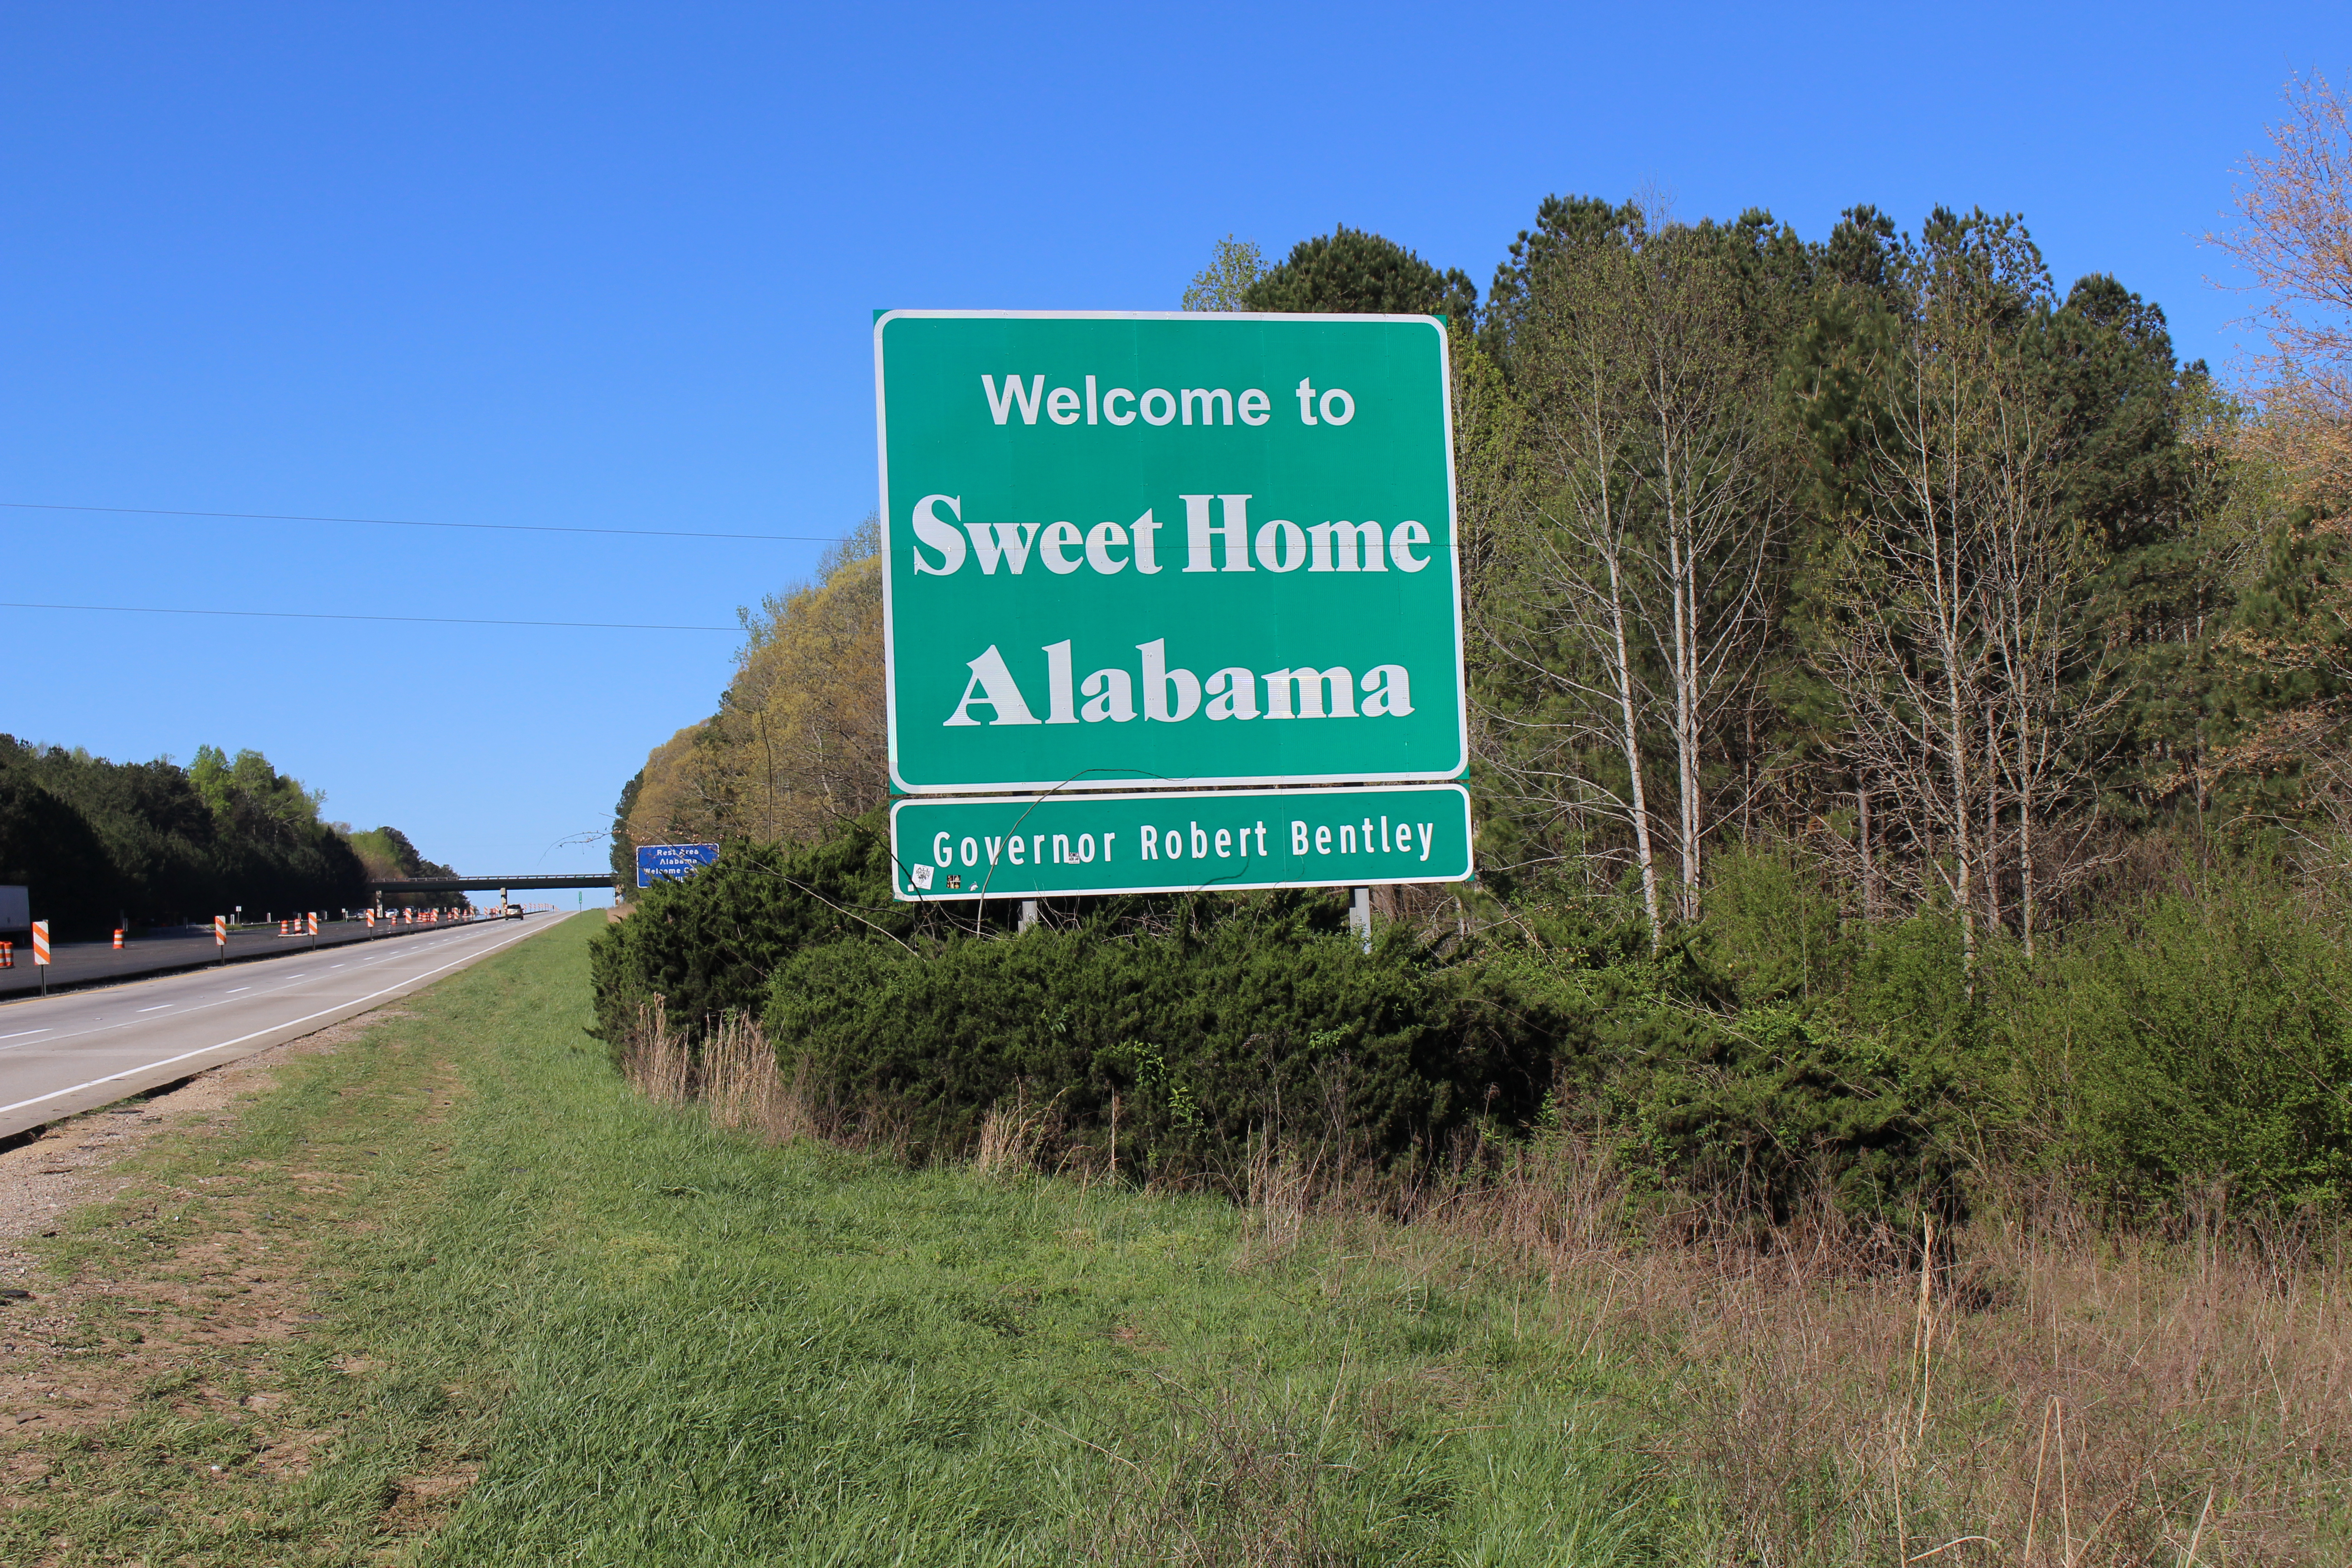 Lynard skynard and nelly big wheels keep on turning, carry me home to see my… nelly vs. File Sweet Home Alabama I20wb Jpg Wikimedia Commons